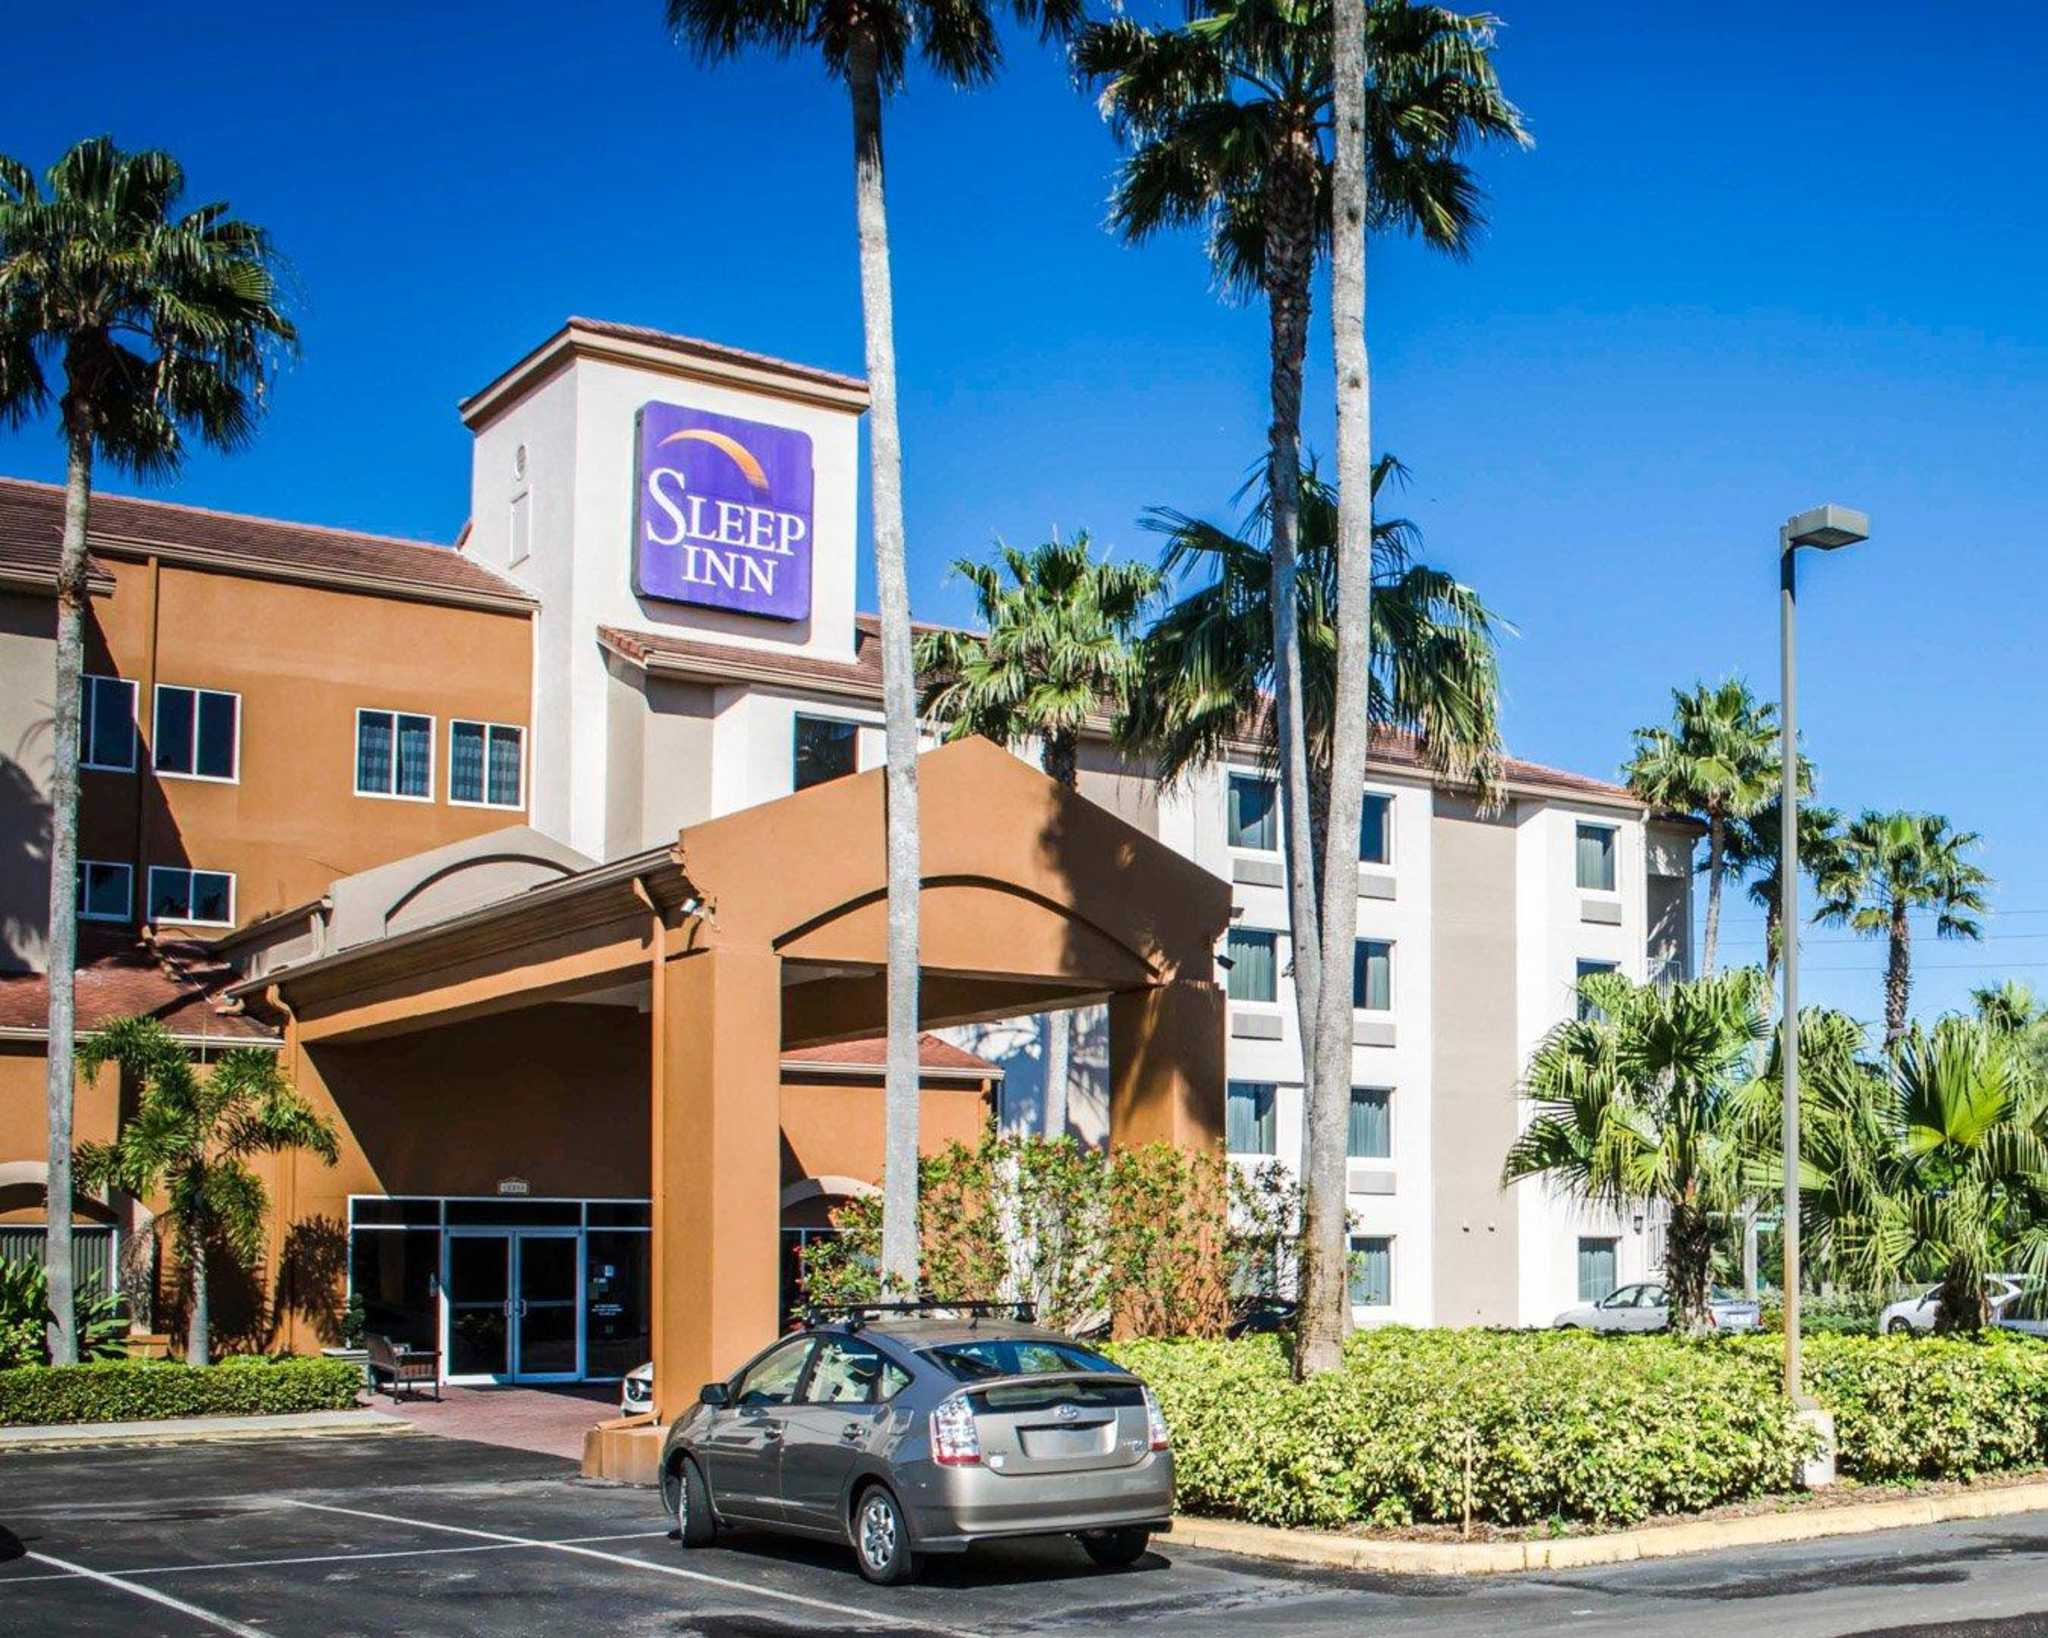 Sleep Inn Near Busch Gardens - Usf  Tampa Florida  Fl